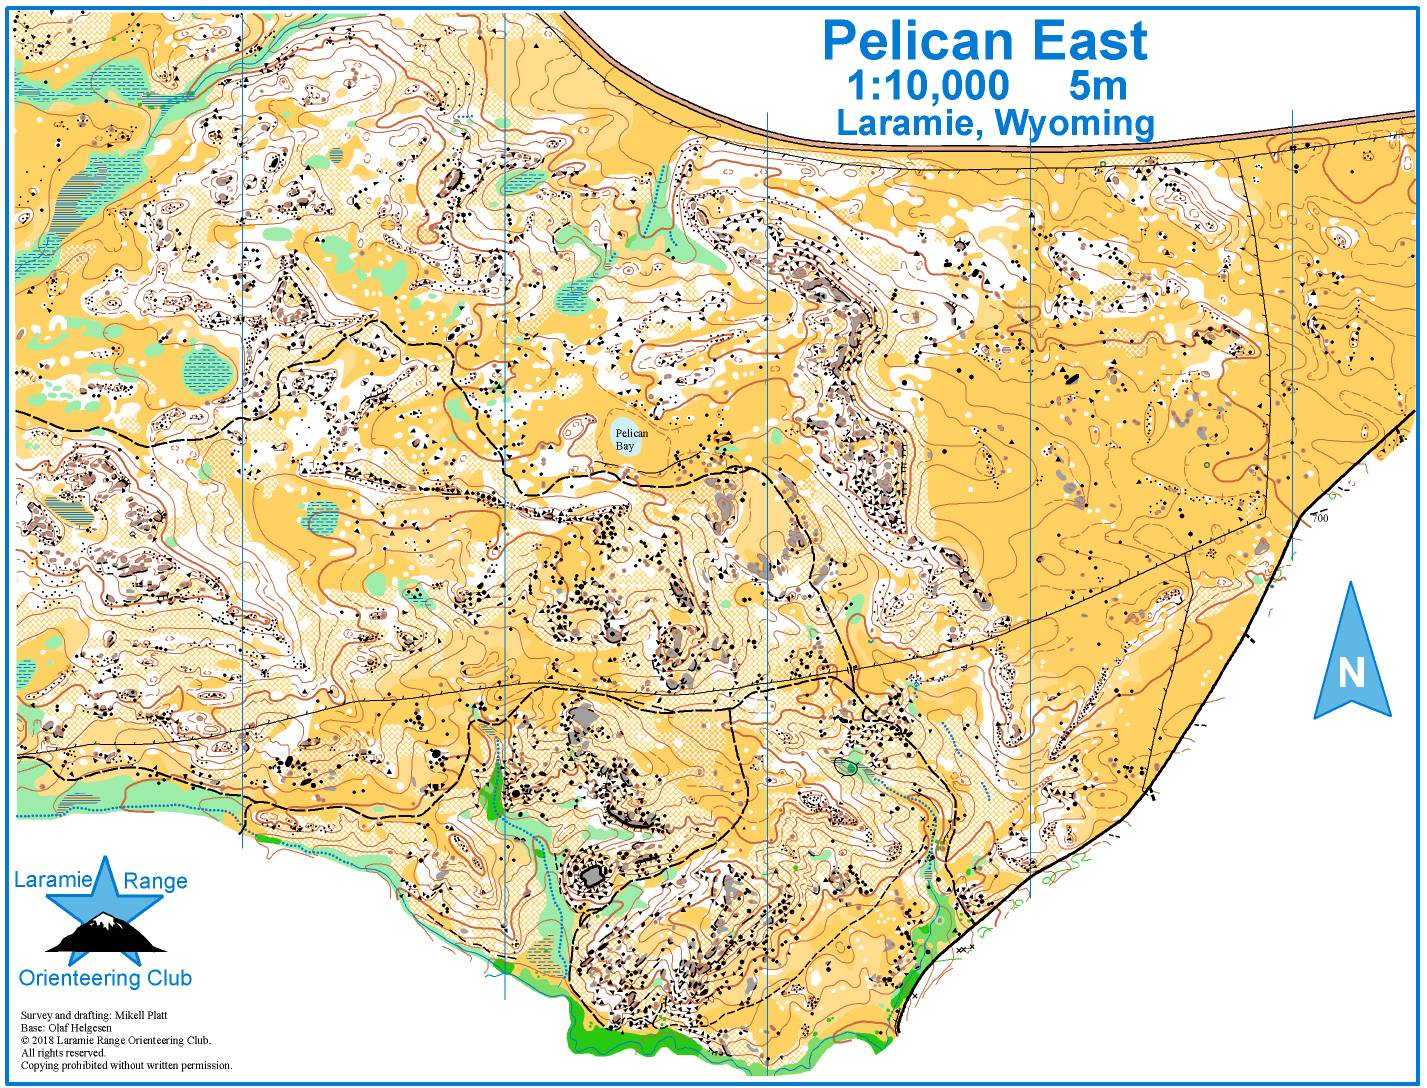 Rocky Mountains Wyoming Map.Rocky Mtn O Fest Day 4 Pelican Bay September 1st 2018